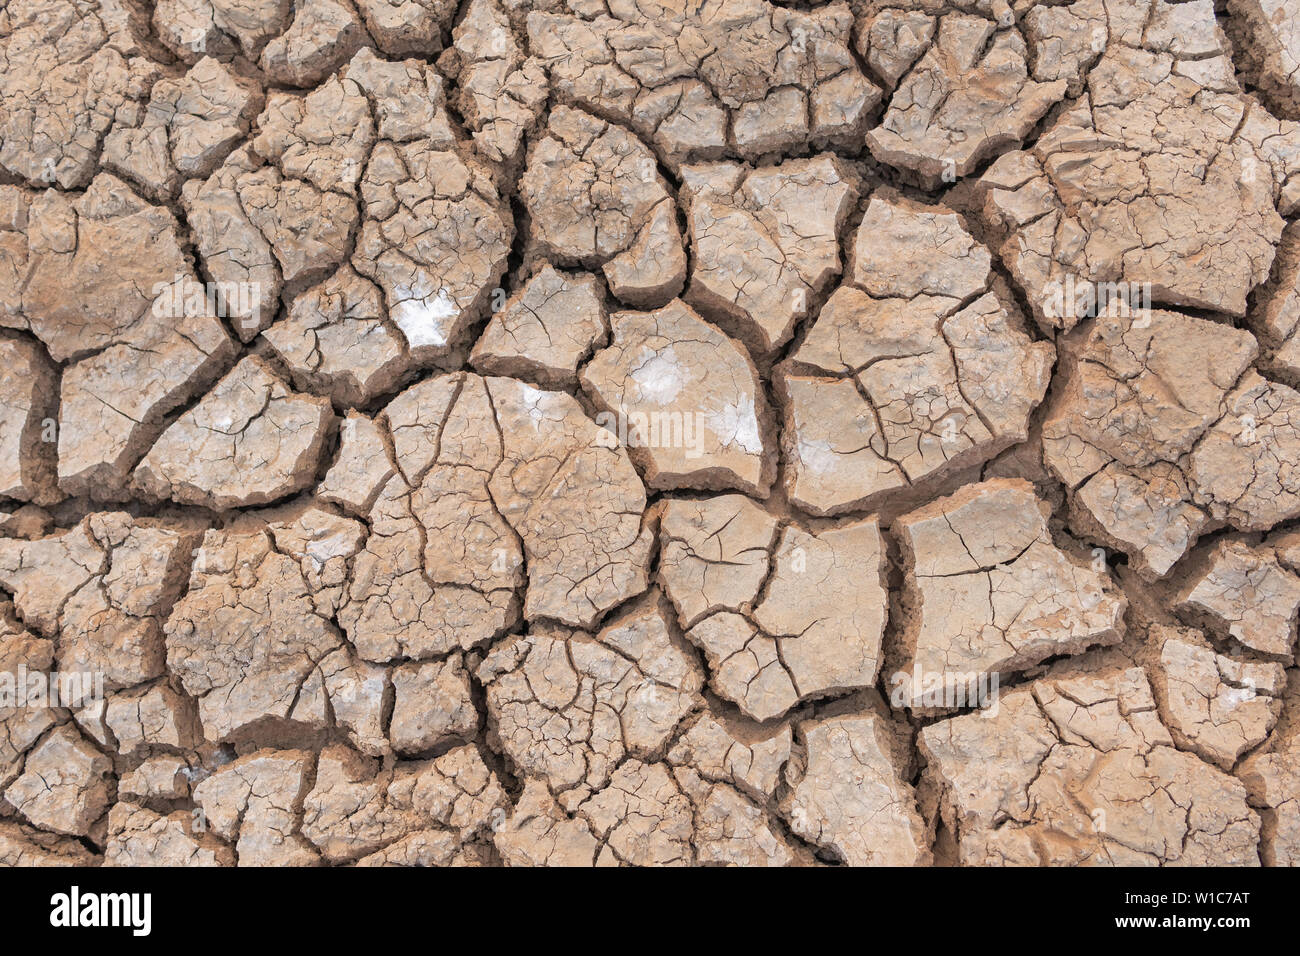 No Hot Water >> Drought The Ground Cracks No Hot Water Lack Of Moisture Top